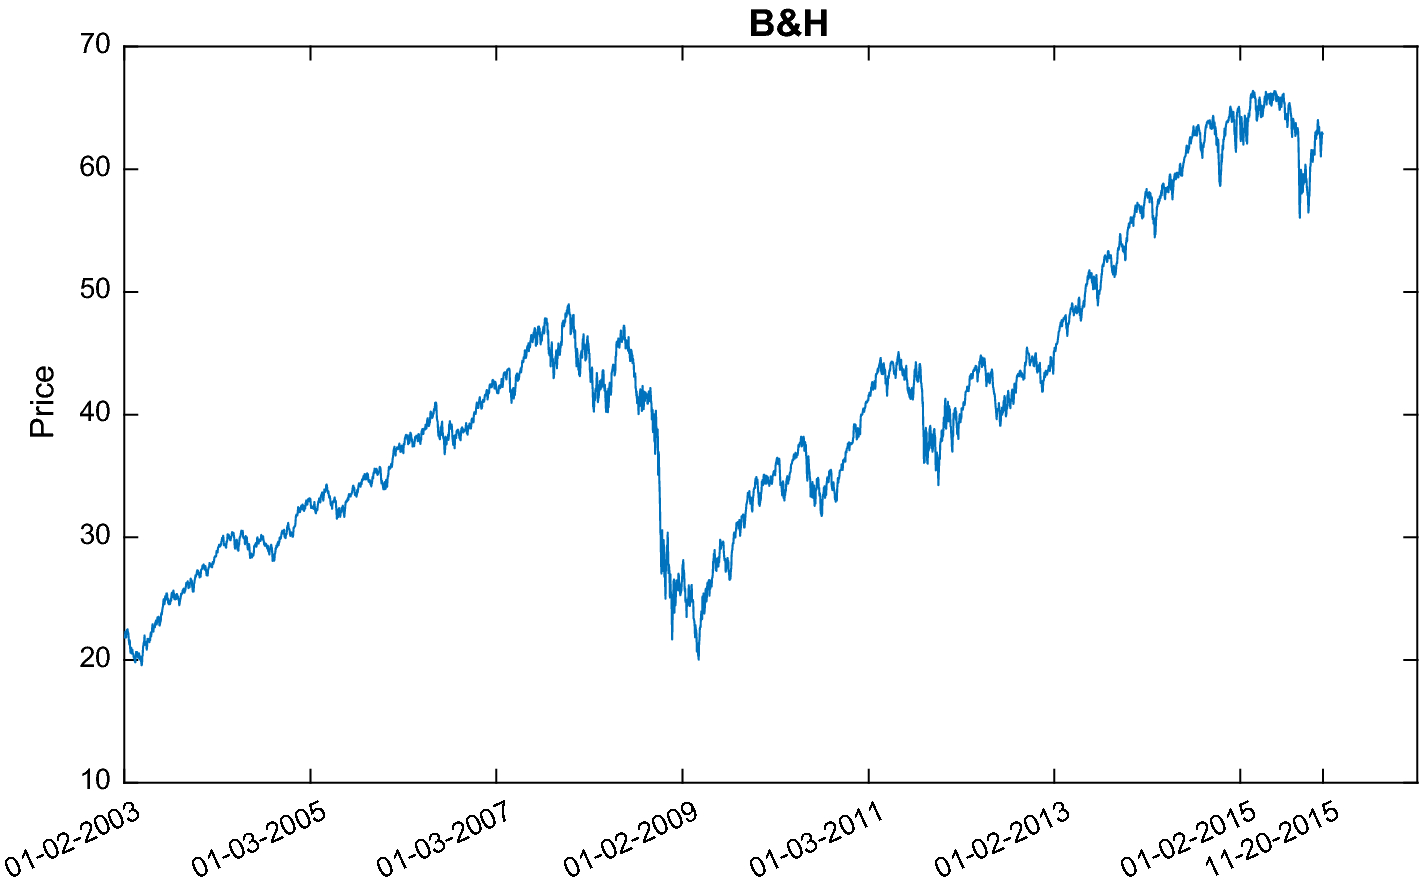 Generating trading rules on US Stock Market using strongly